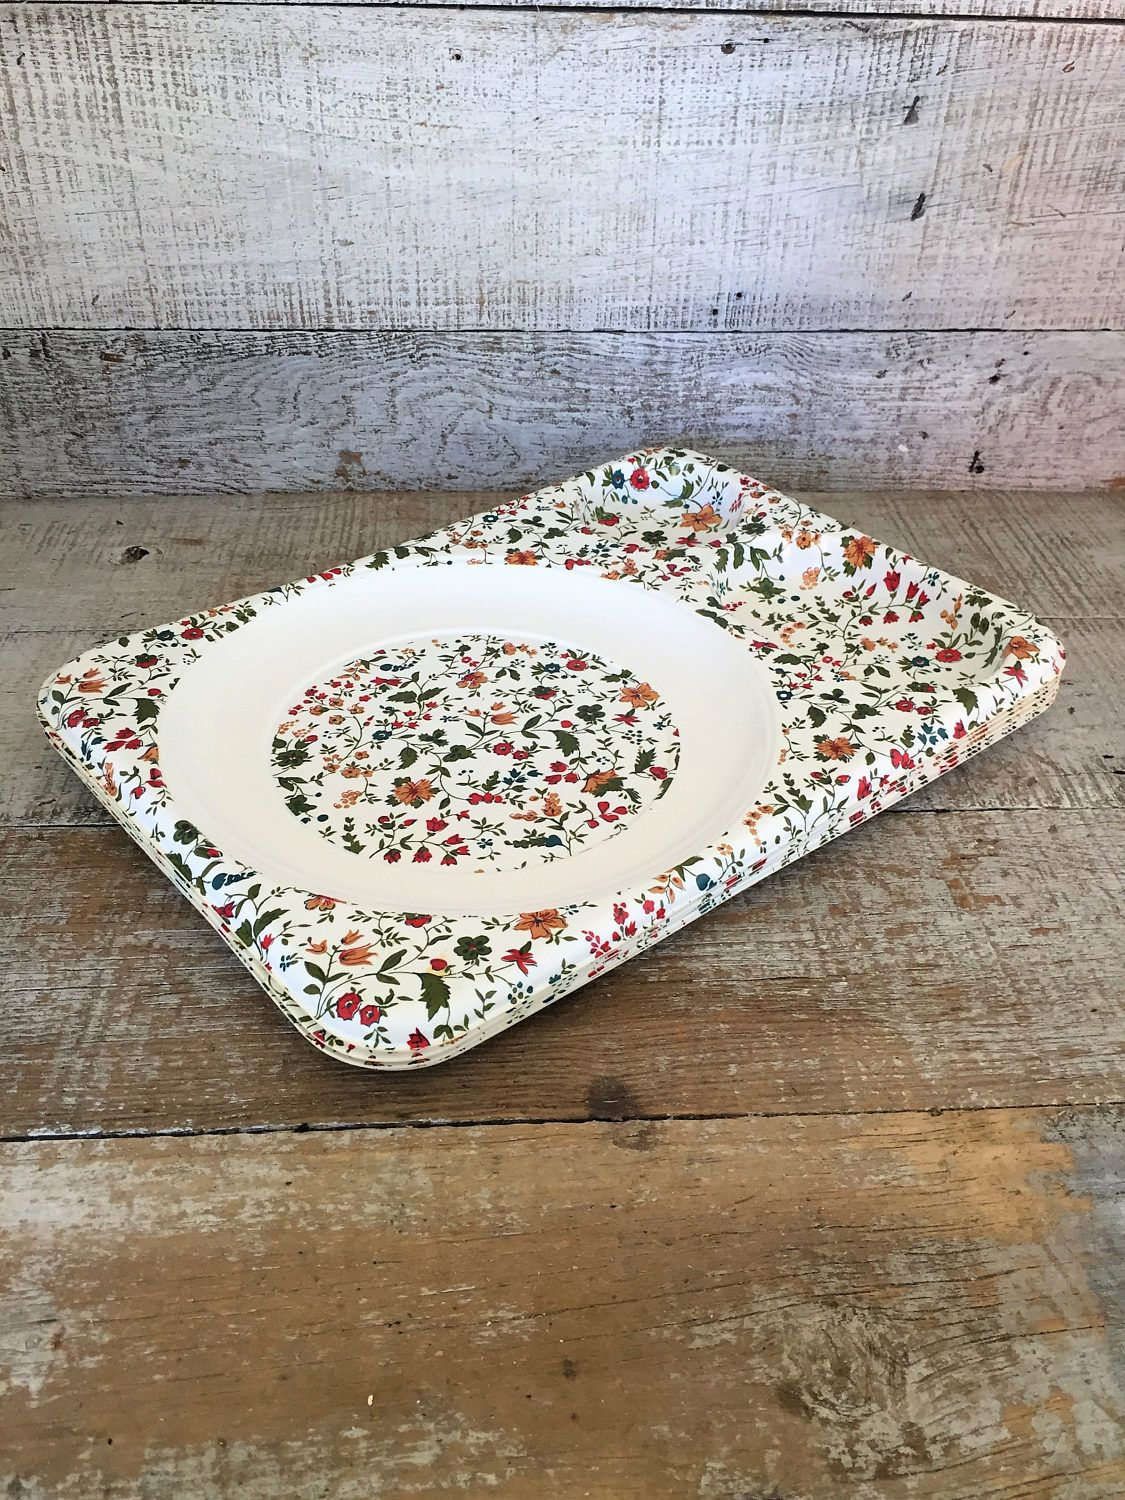 Food Trays 6 Snack Trays Cafeteria Trays Floral Plastic Food Trays Picnic Plates Picnic Set Party & Food Trays 6 Snack Trays Cafeteria Trays Floral Plastic Food Trays ...